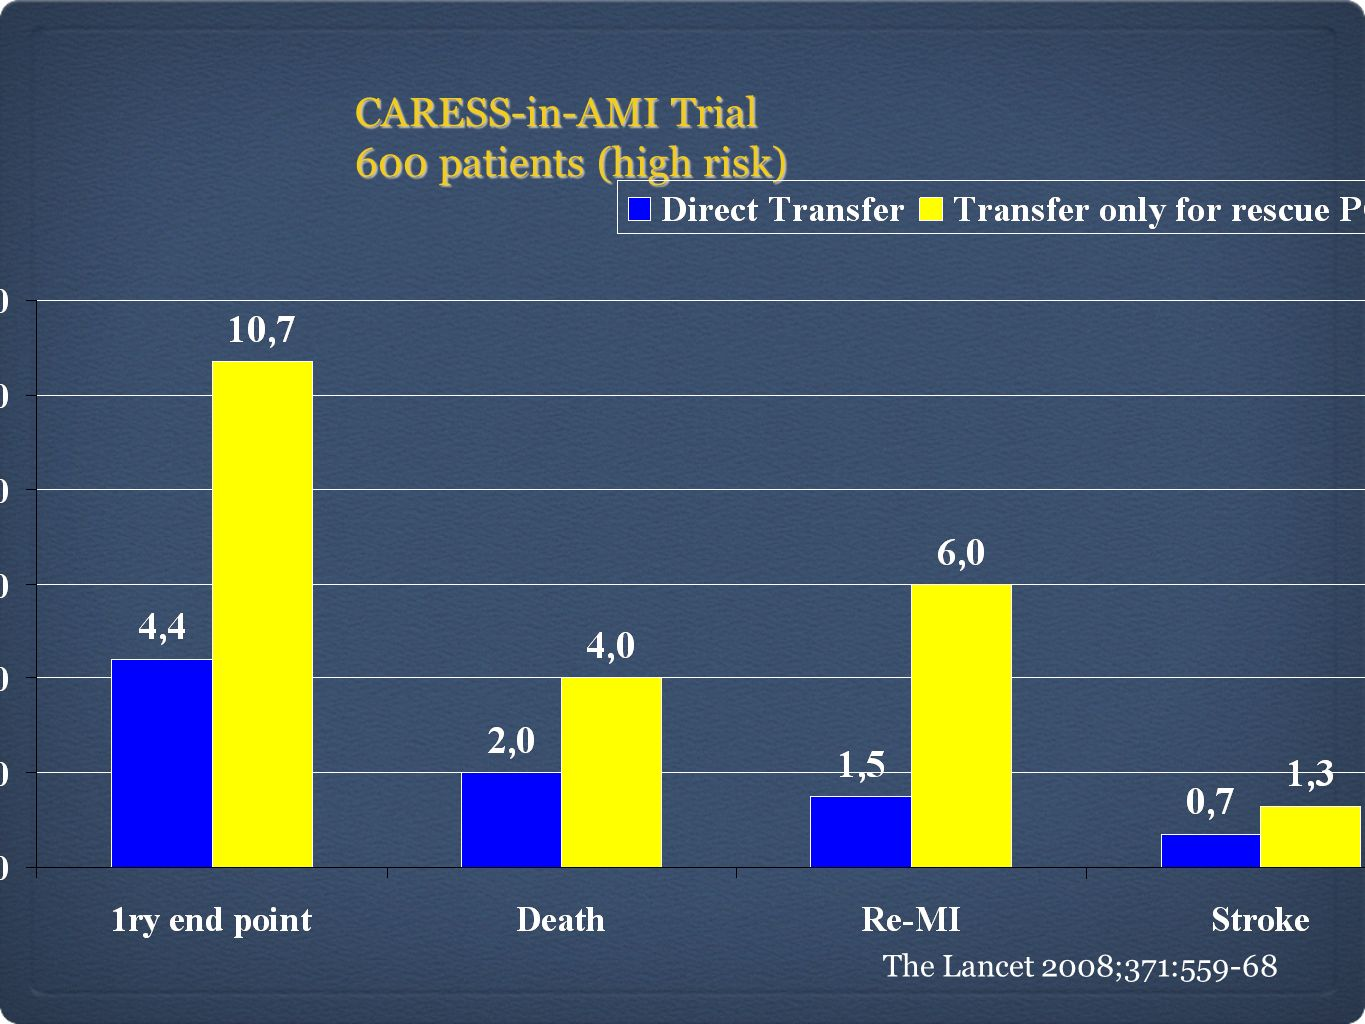 CARESS-in-AMI Trial 600 patients (high risk)